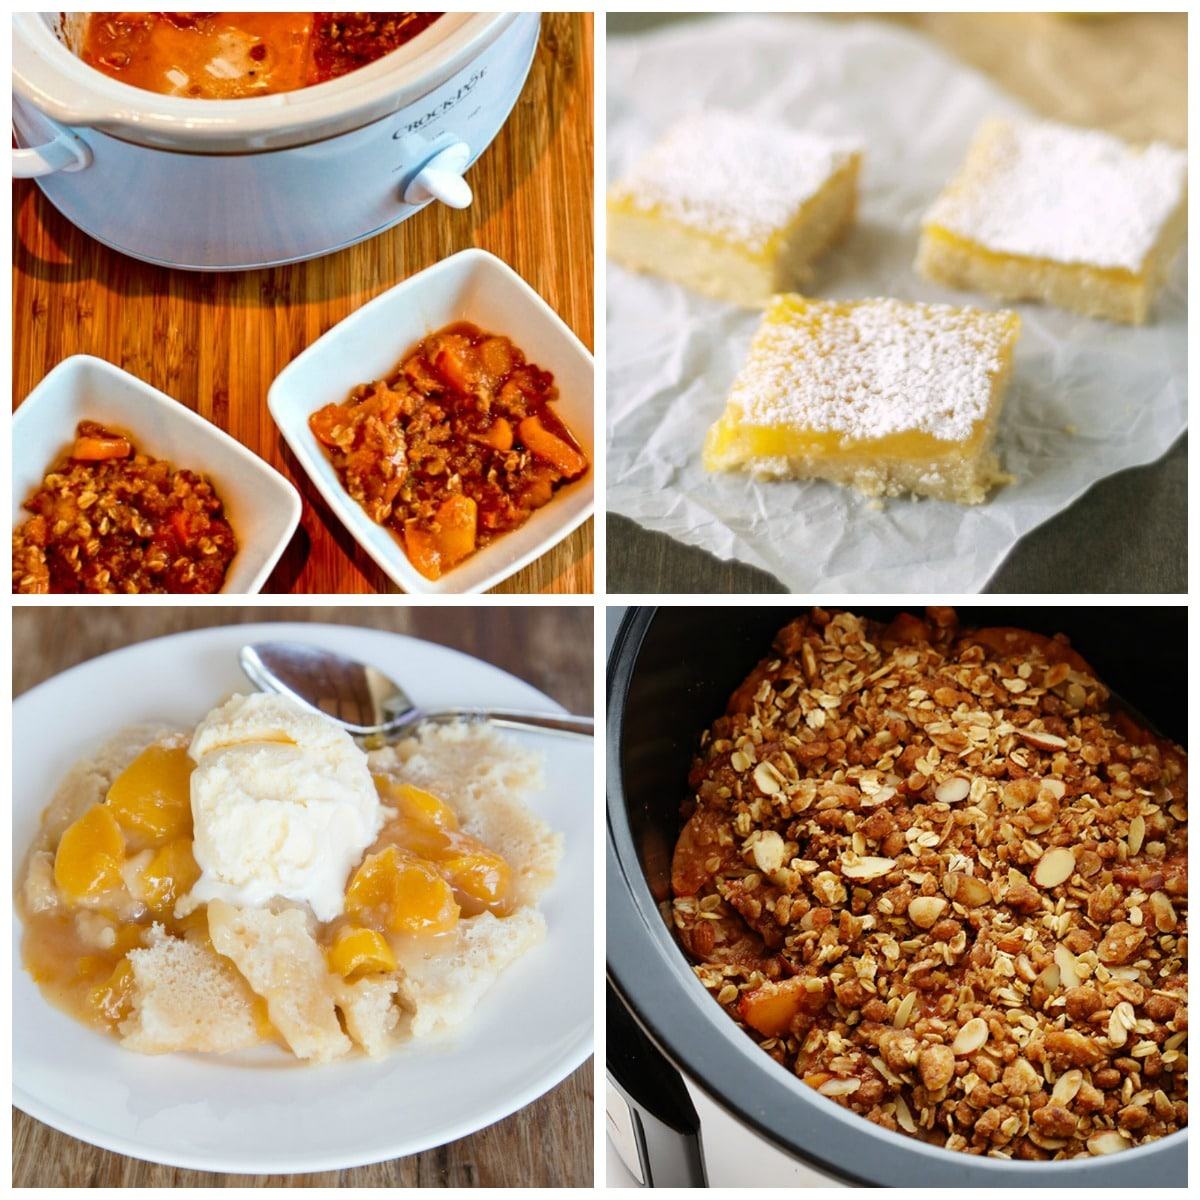 Slow Cooker Desserts with Fruit photo collage